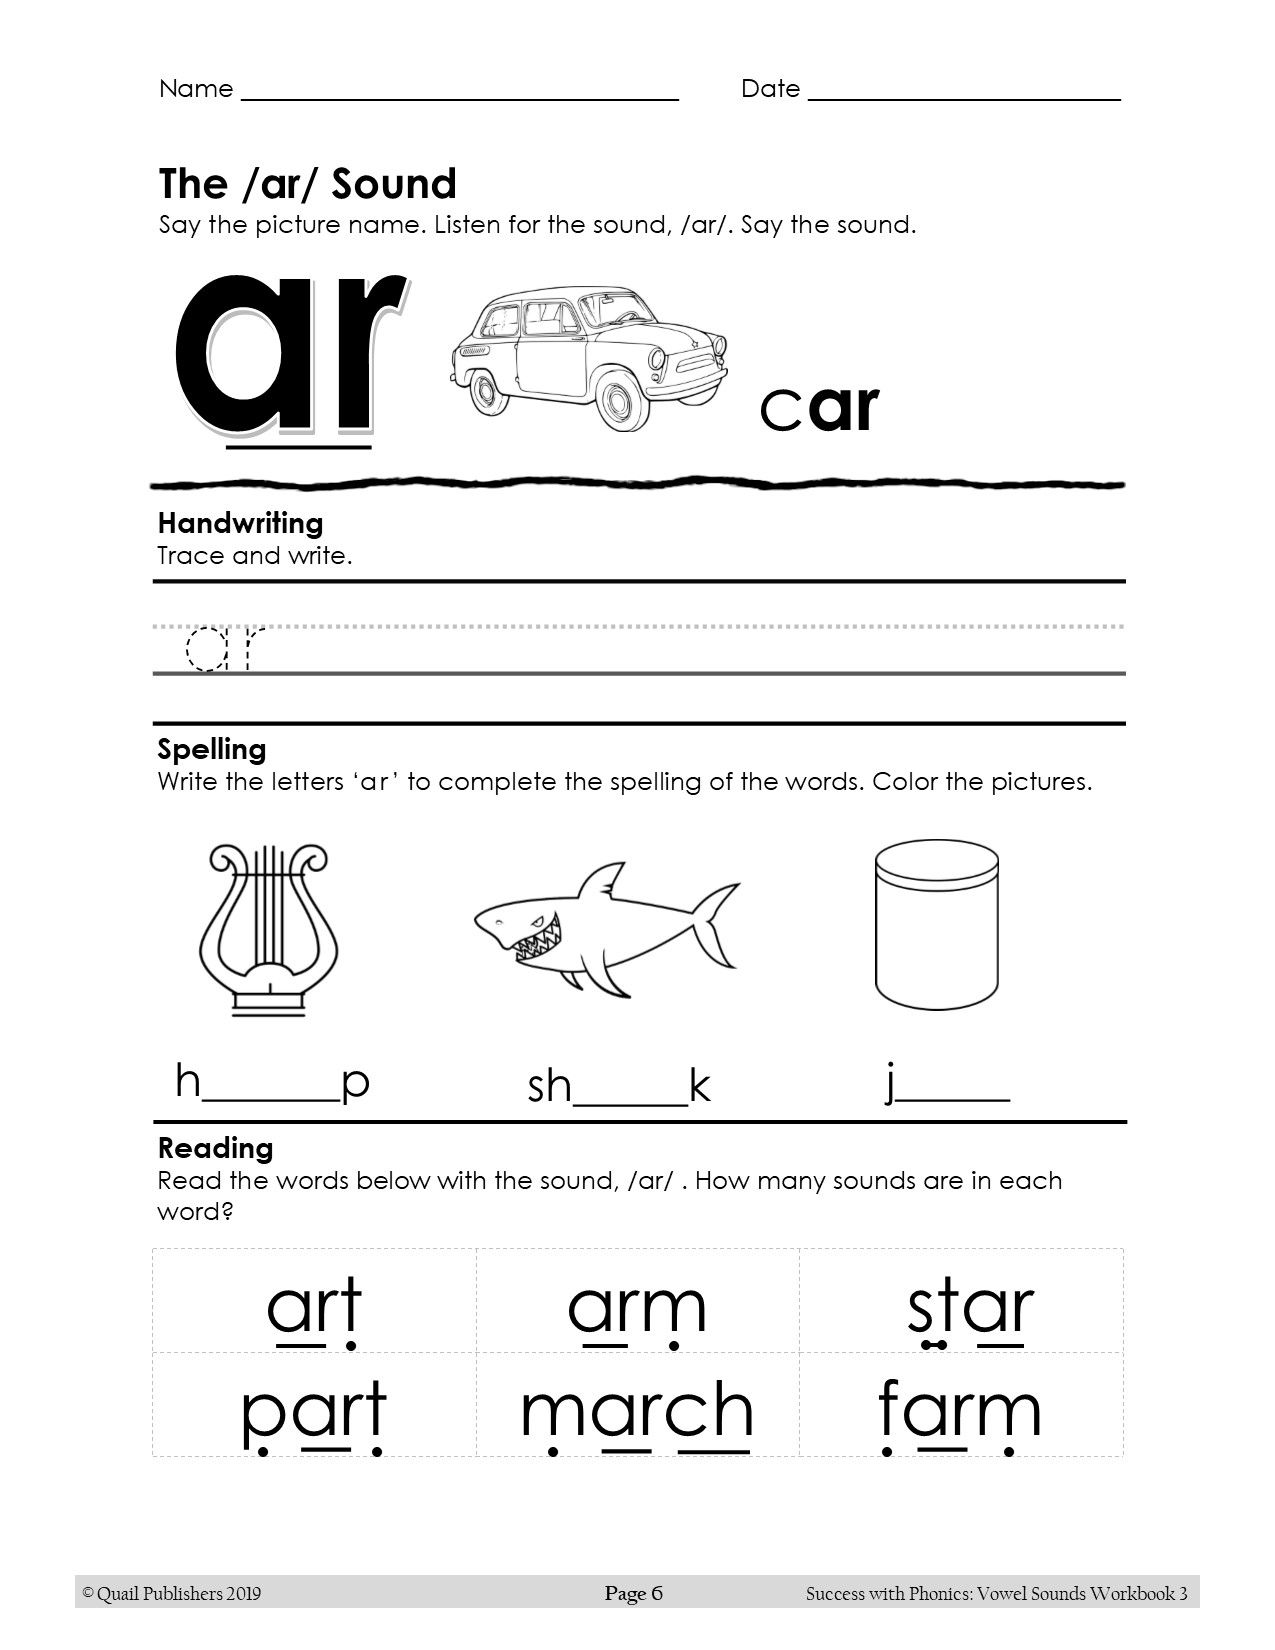 Vowel Sounds Workbook 3